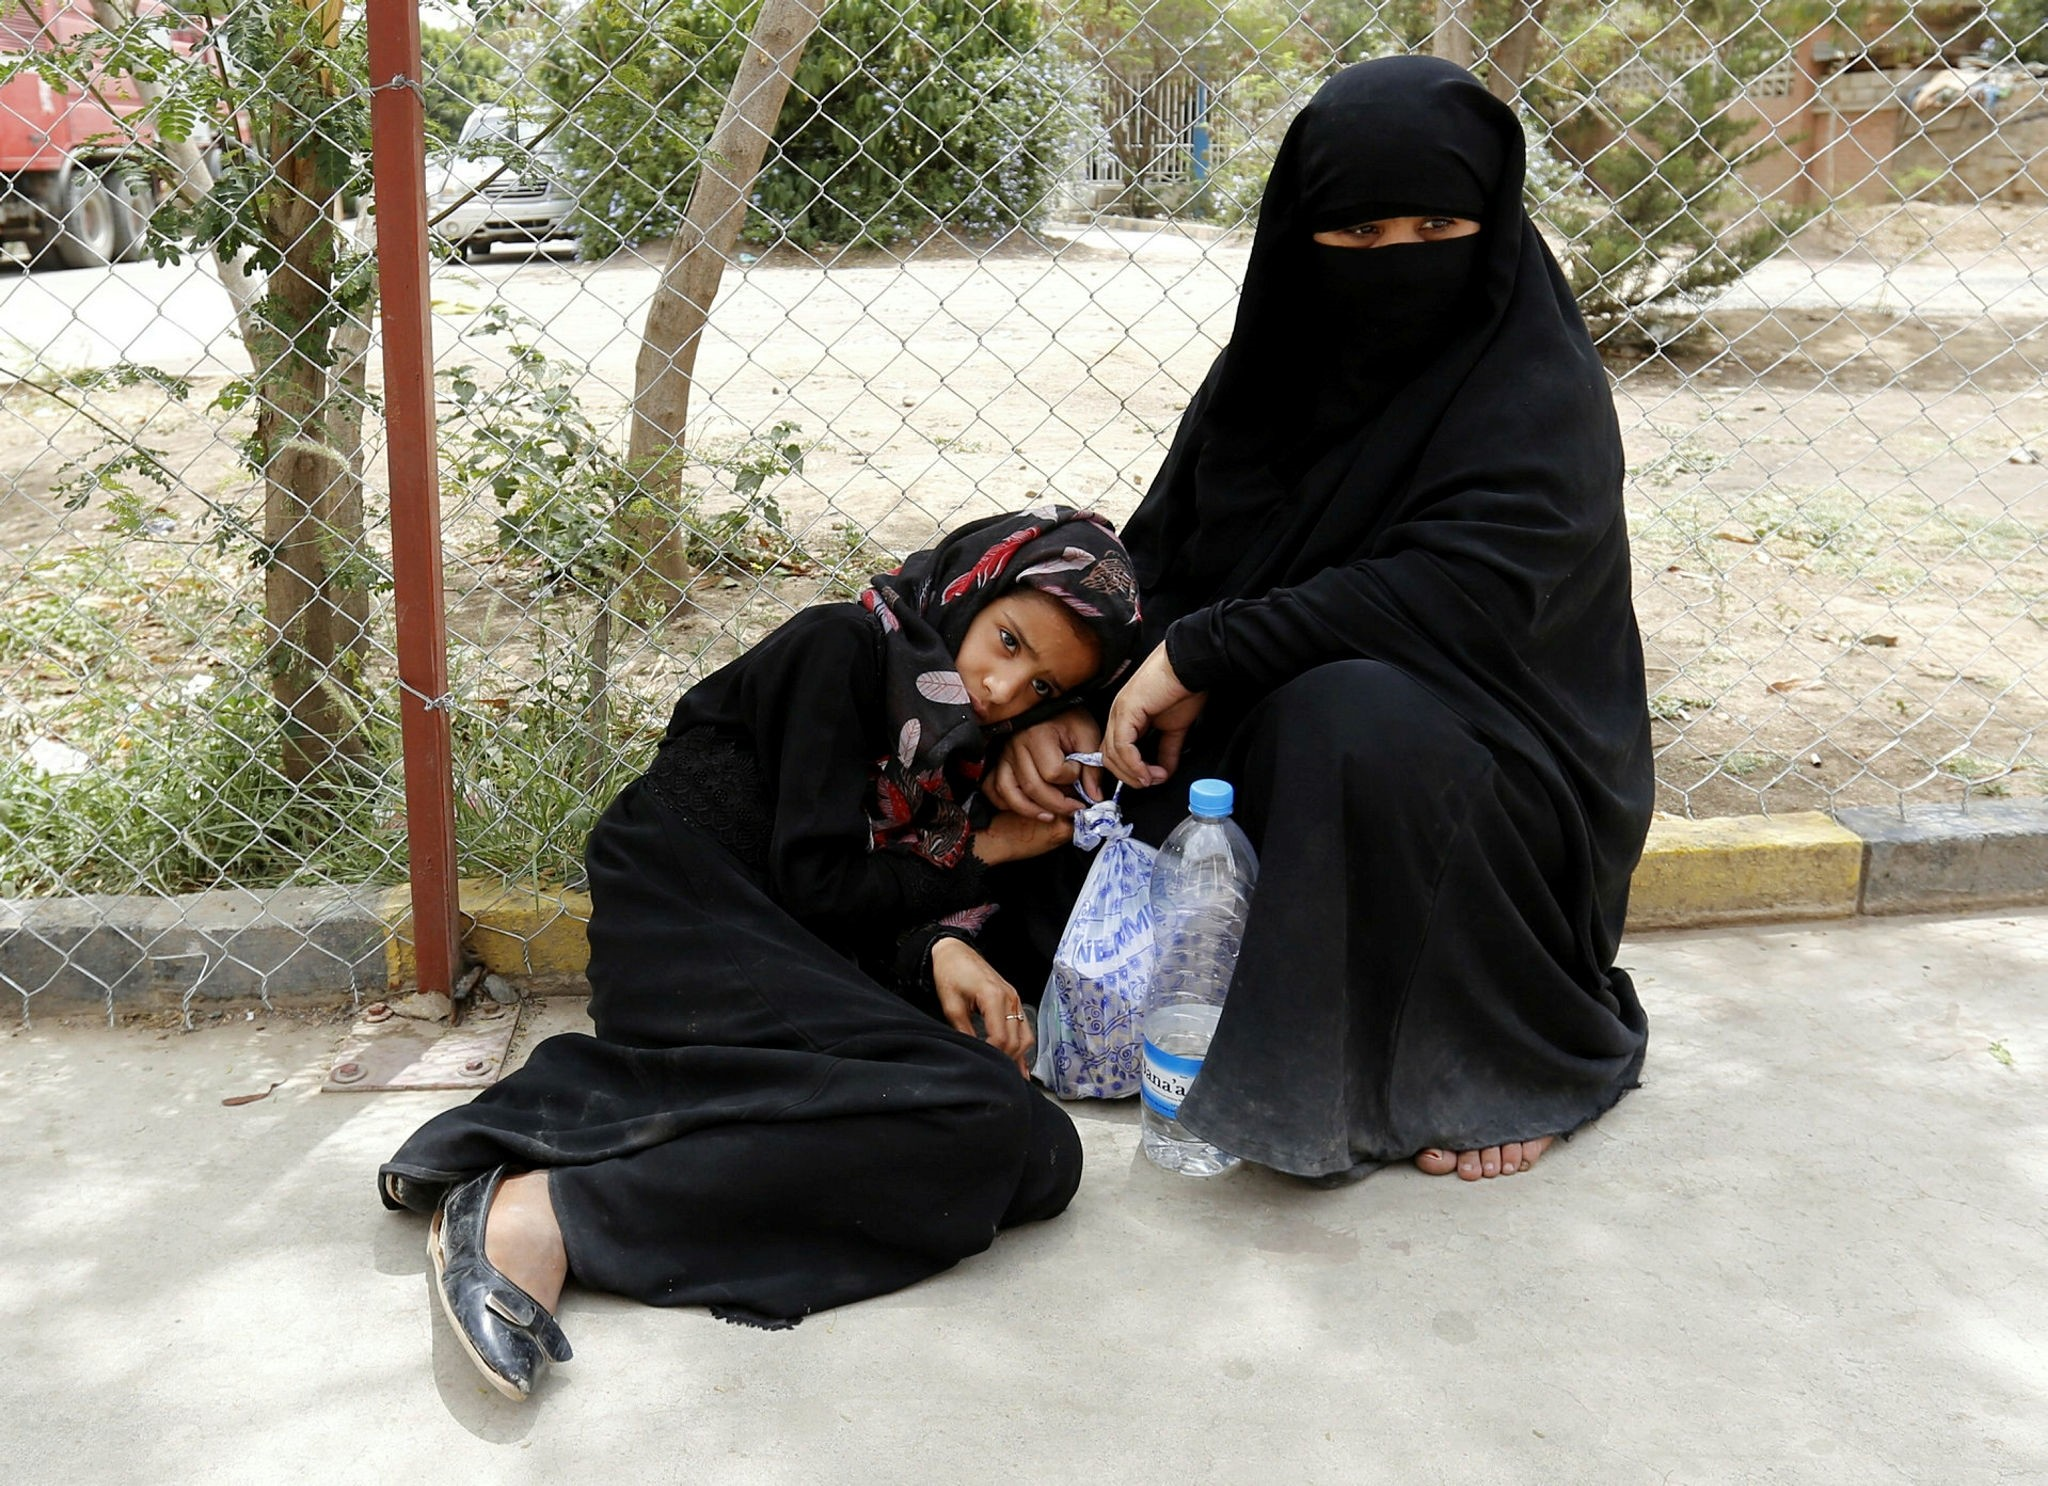 A cholera-infected Yemeni girl waits to receive treatment next to her mother at a hospital amid a serious cholera outbreak in Sanau2019a, Yemen, July 1.